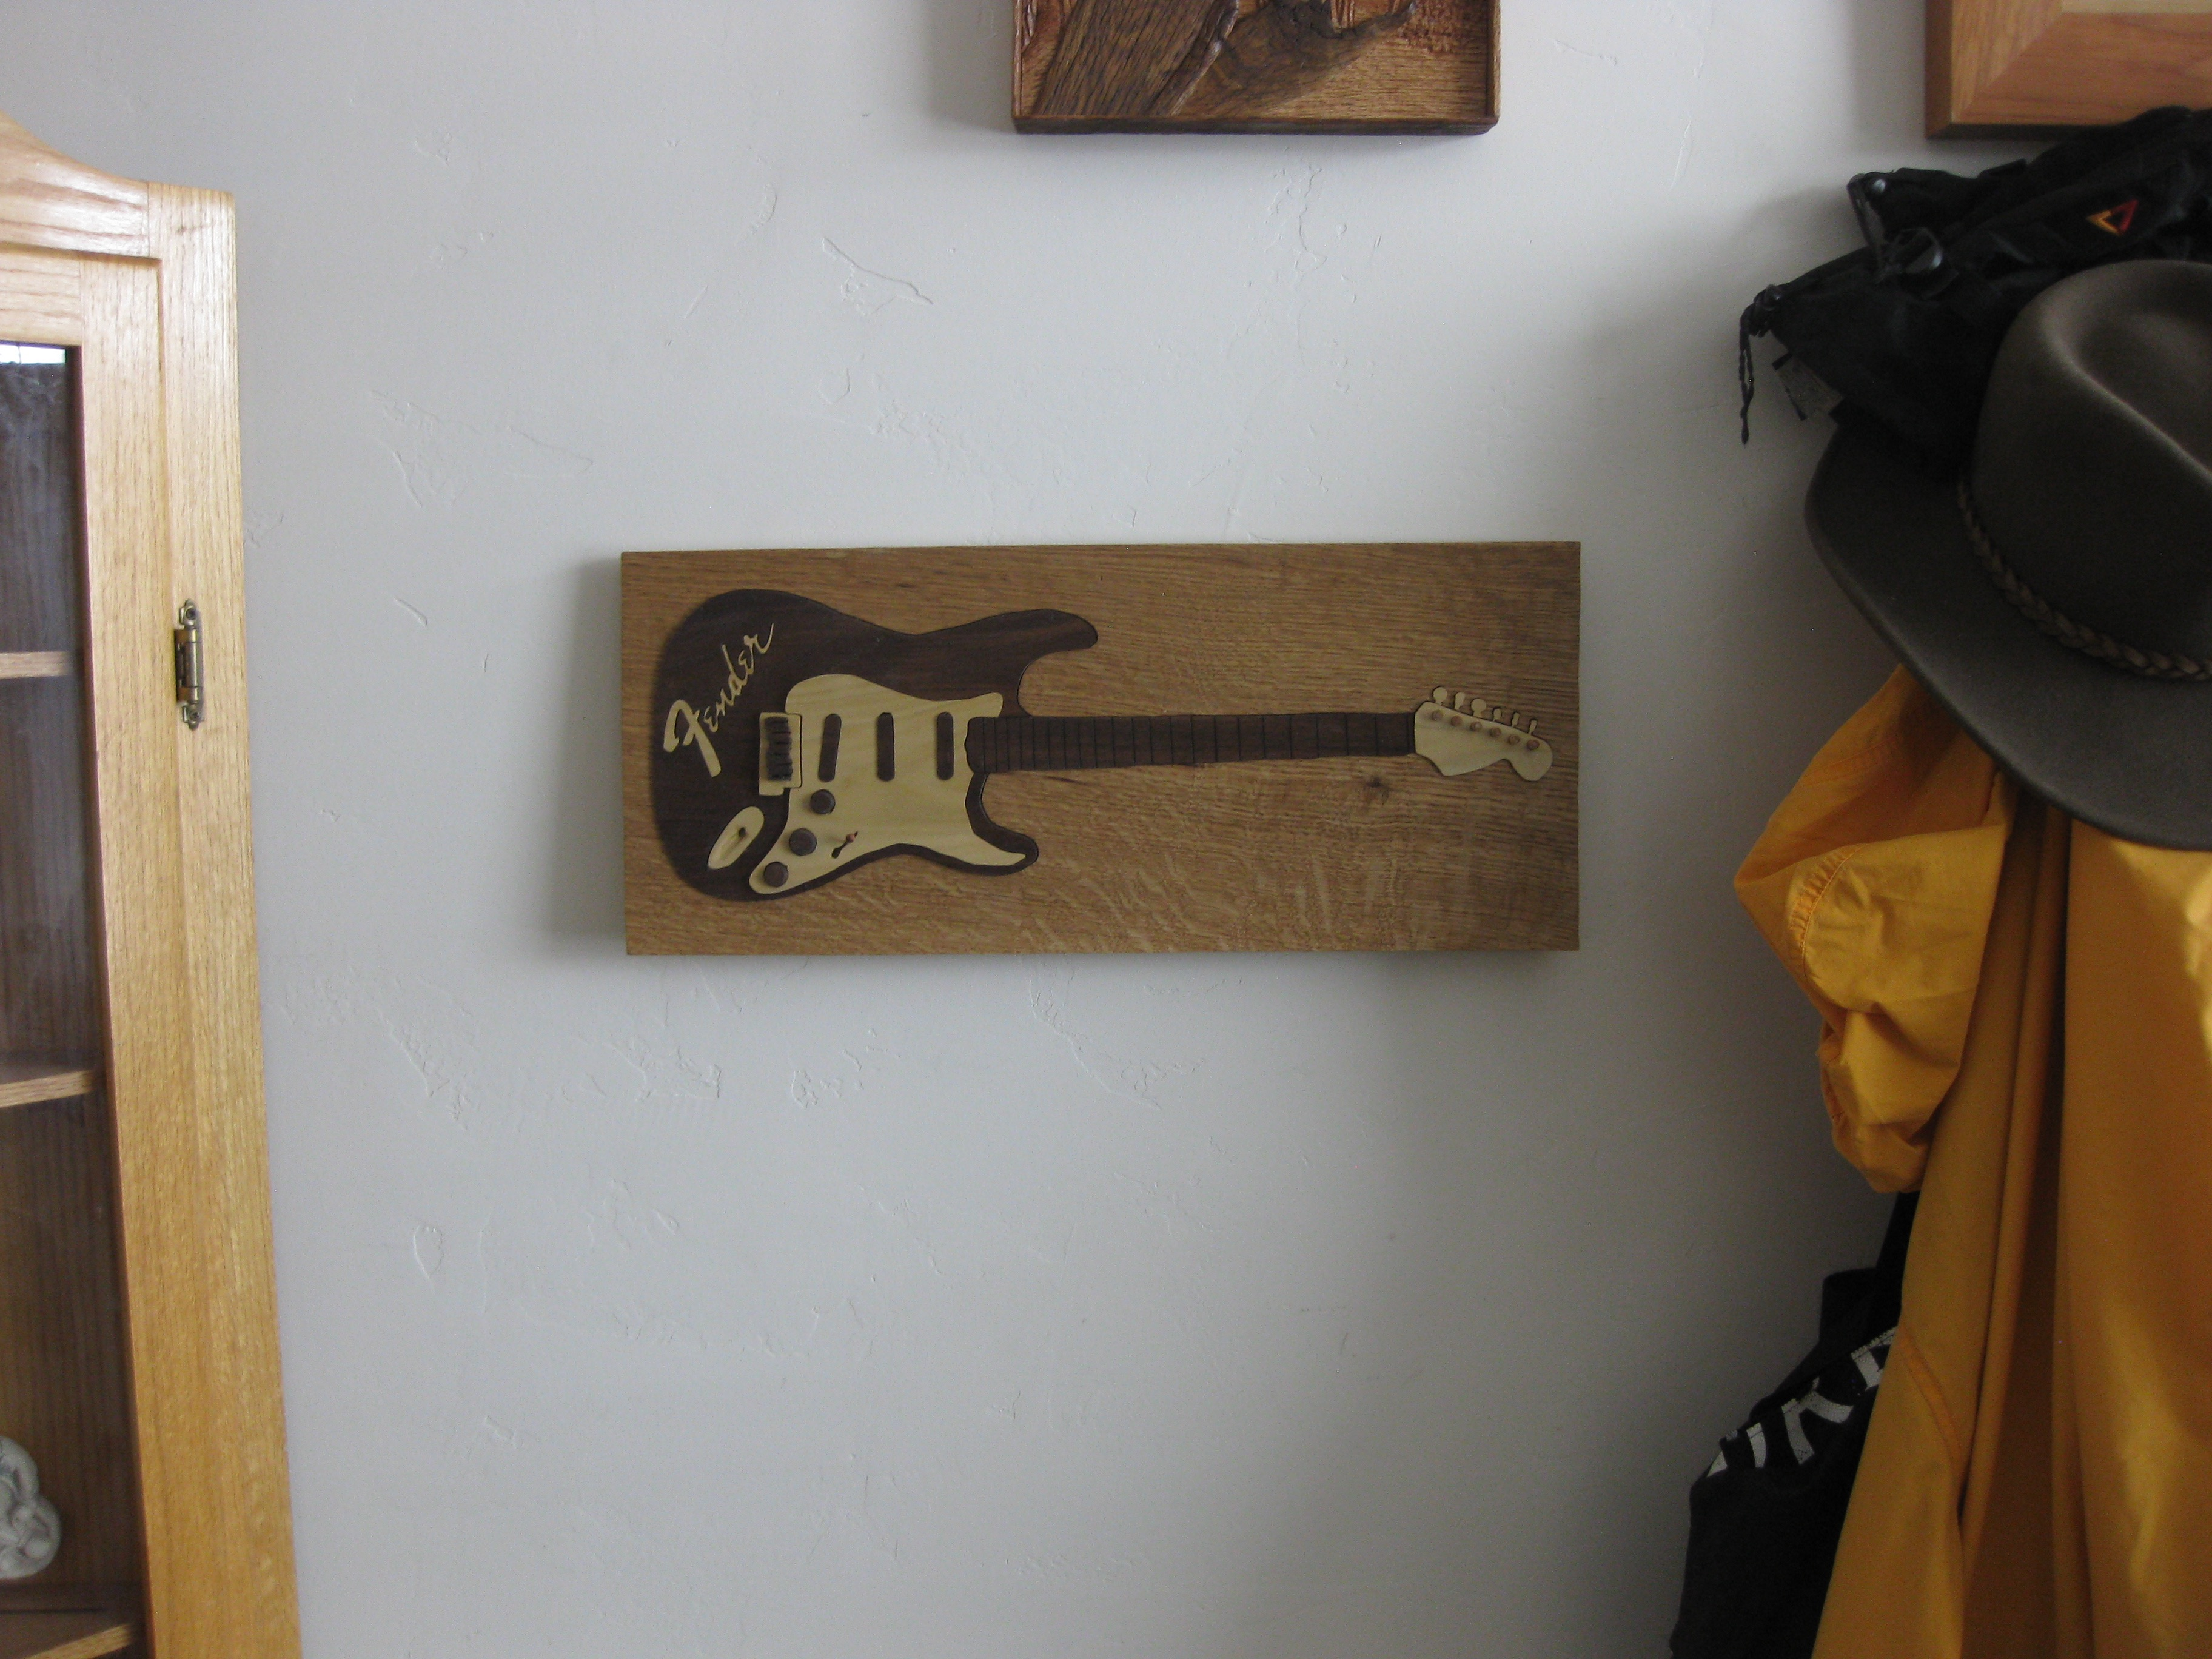 Vintage Fender Puzzle hanging on wall